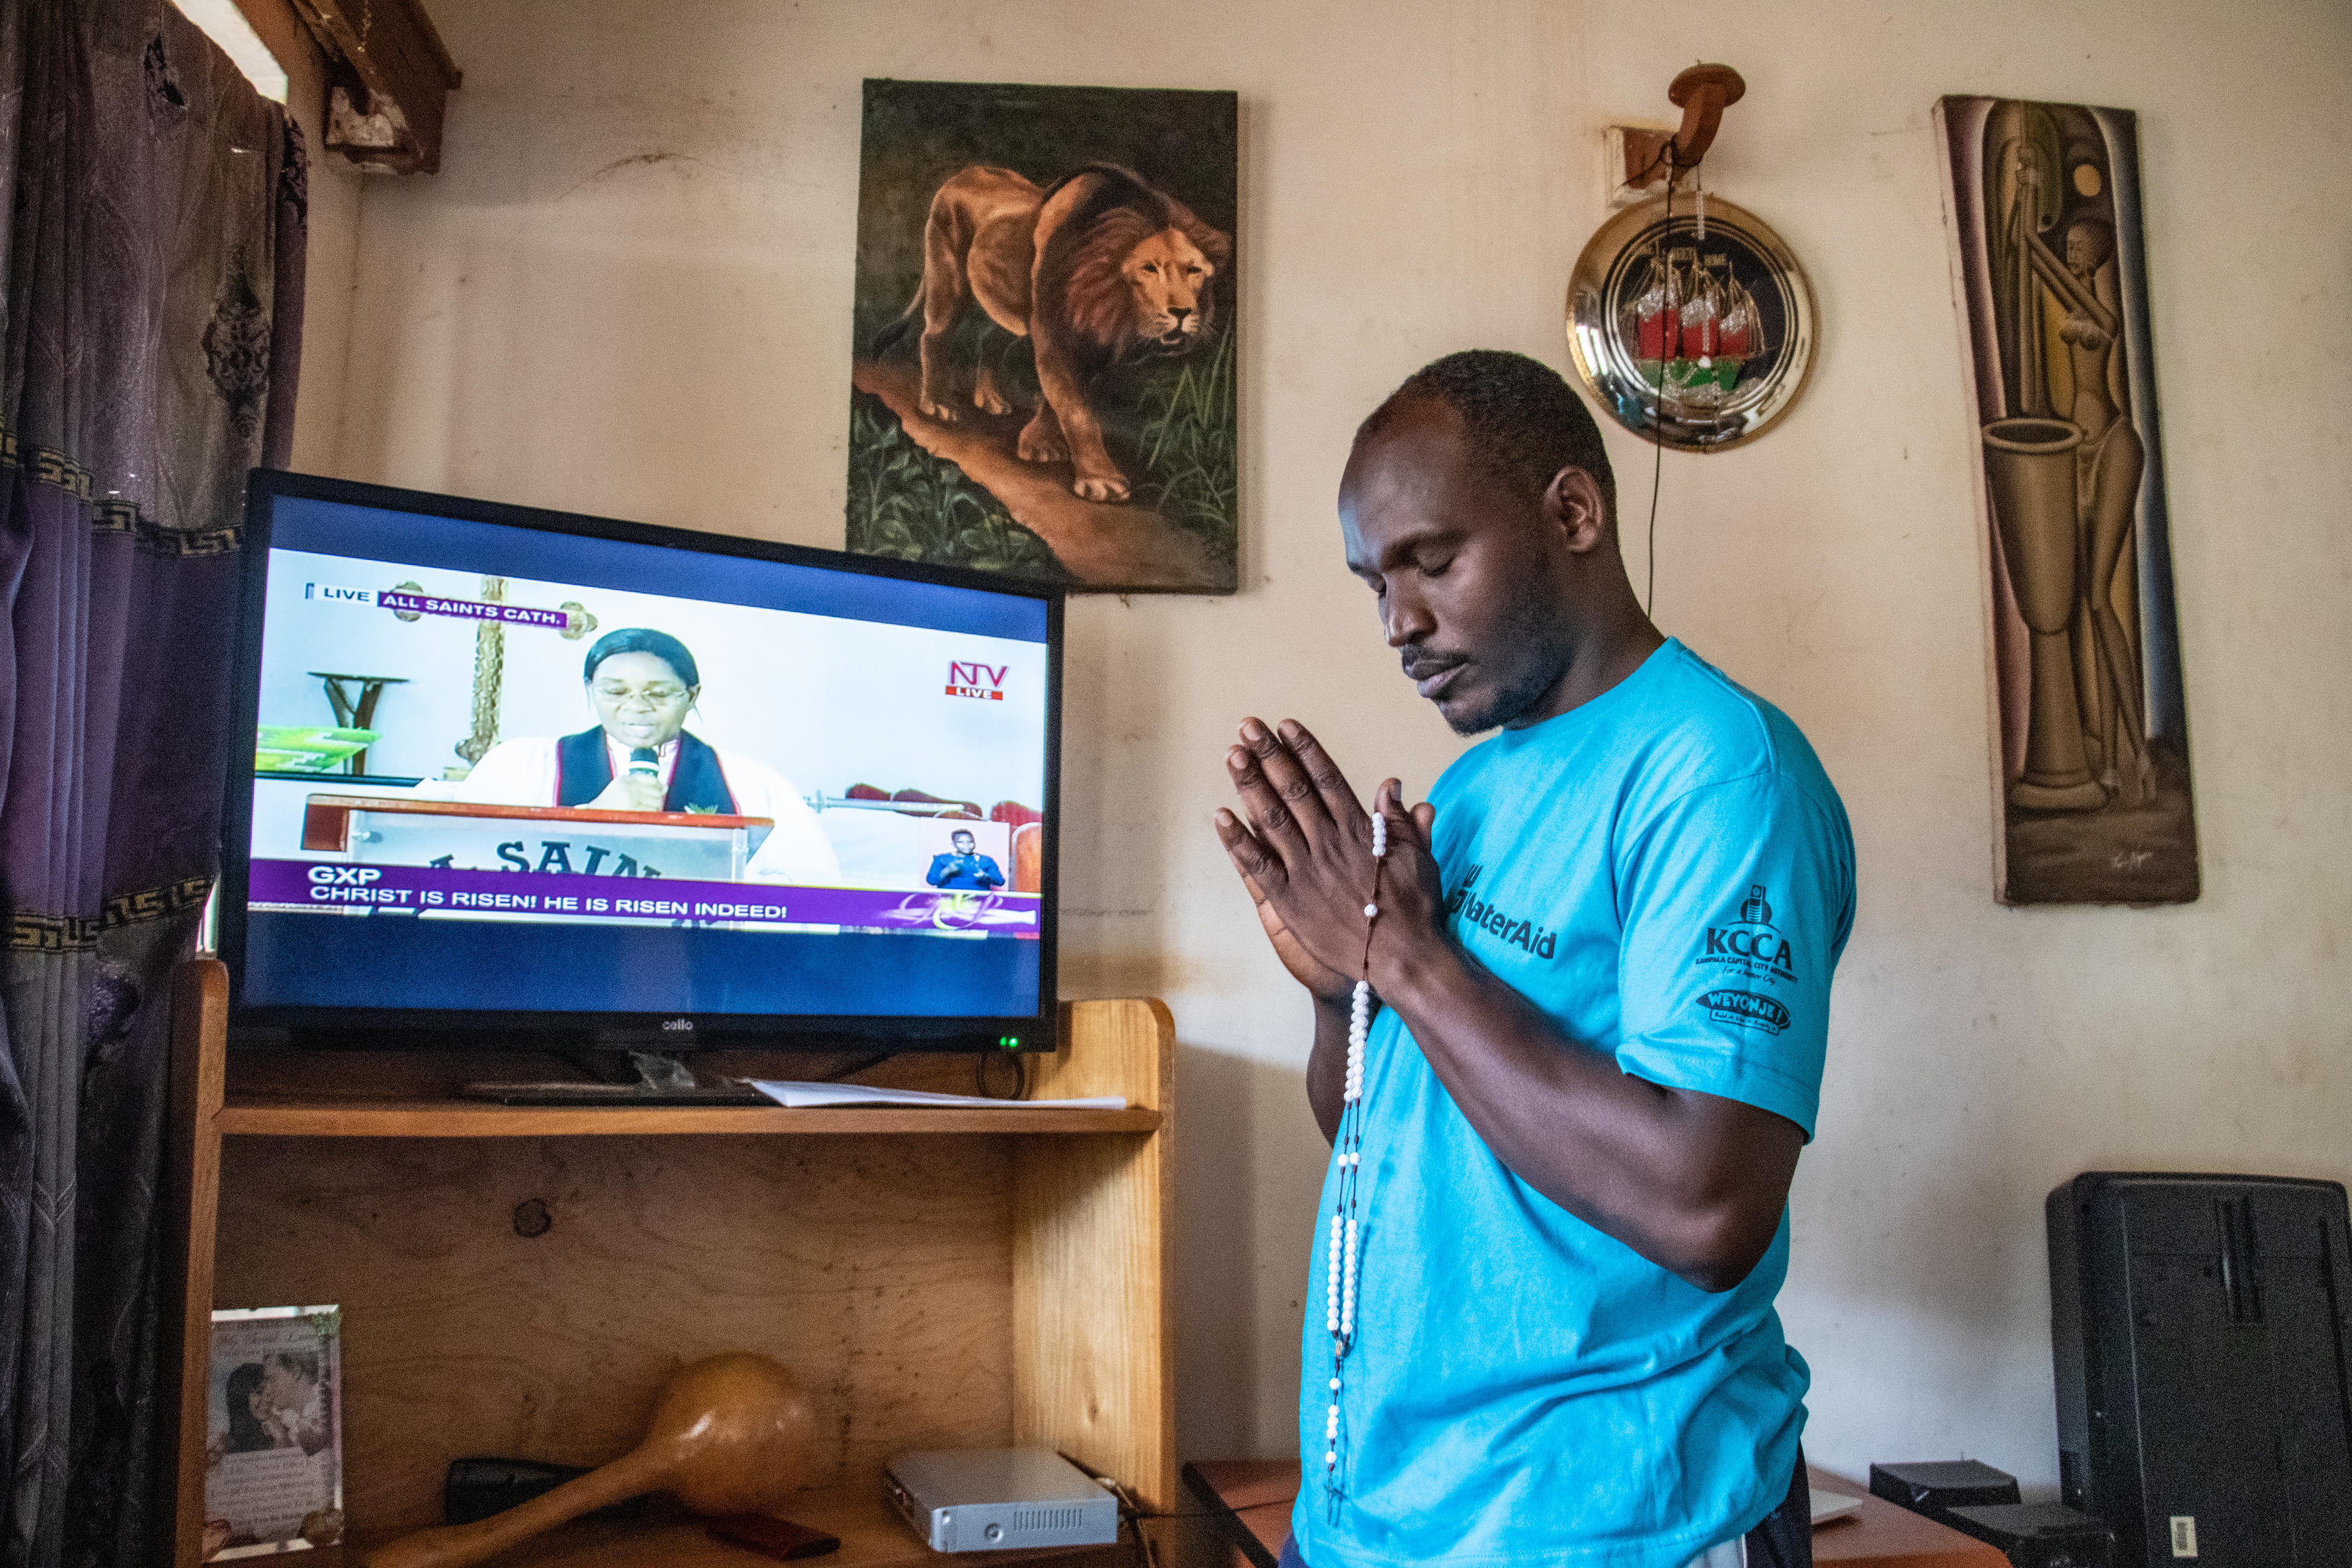 James Kiyimba, Voices from the Field Officer, WaterAid Uganda, attending a televised Easter Sunday church service from his home. Covid-19 response. Lockdown Diaries - James Kiyimba. Kampala, Uganda. April 2020